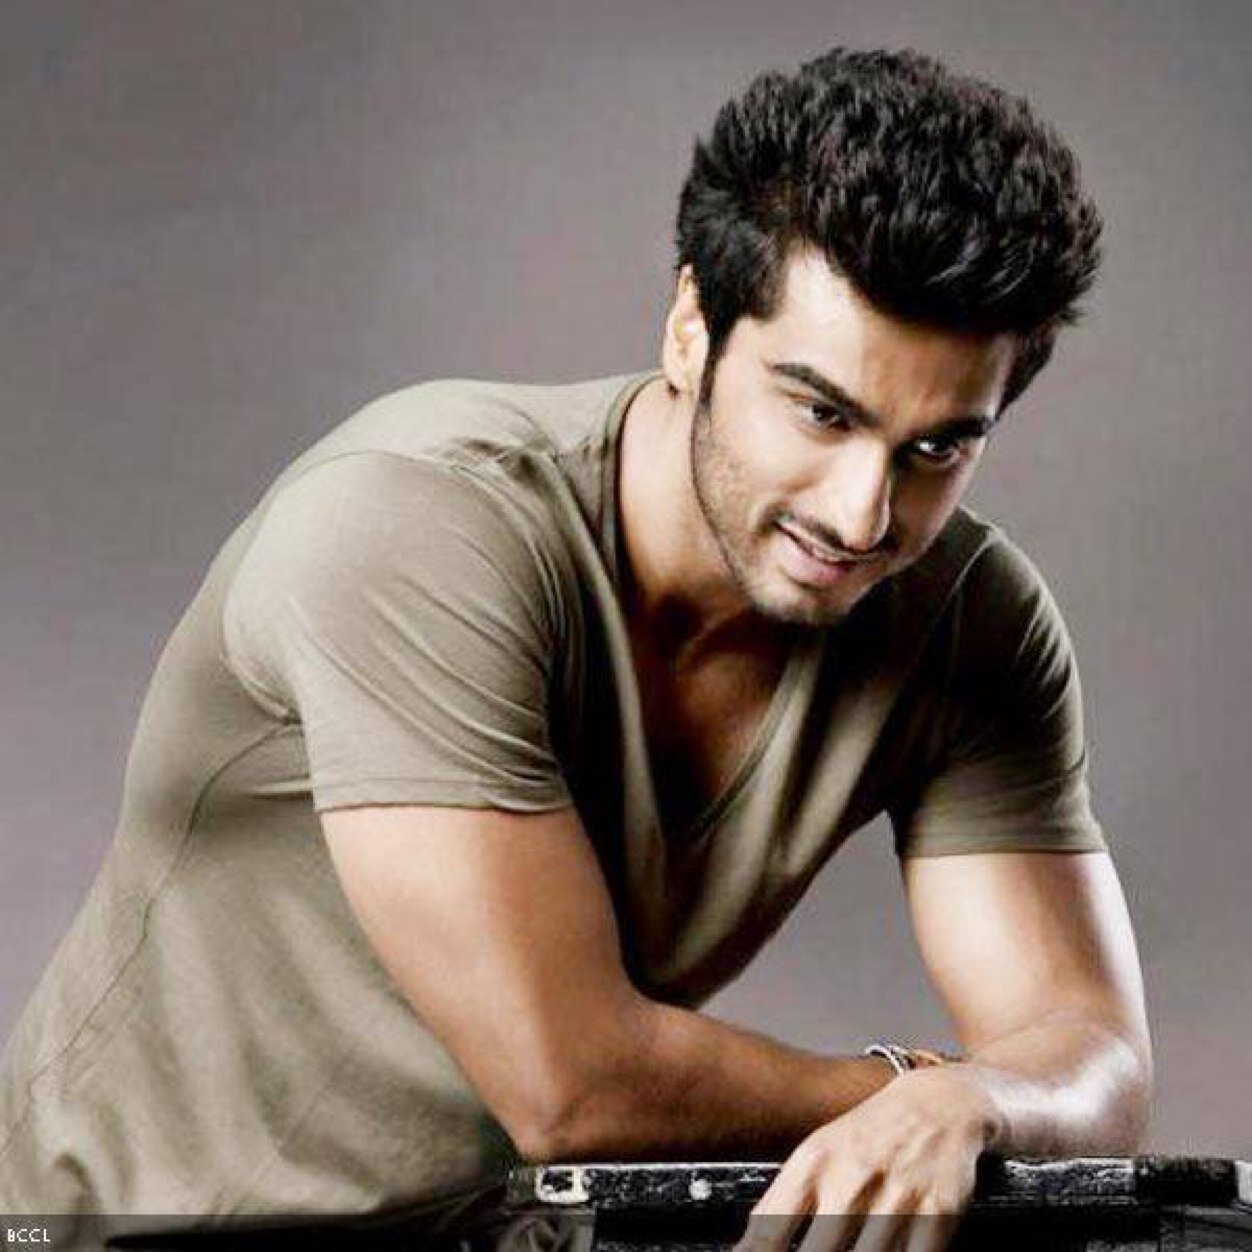 arjun kapoor mp3 downloadarjun kapoor film, arjun kapoor vk, arjun kapoor instagram, arjun kapoor songs, arjun kapoor filmi, arjun kapoor boyu, arjun kapoor mp3, arjun kapoor and sonakshi sinha, arjun kapoor upcoming movies, arjun kapoor father, arjun kapoor twitter, arjun kapoor sonakshi sinha movie, arjun kapoor old, arjun kapoor mp3 download, arjun kapoor and shruti haasan, arjun kapoor parineeti chopra, arjun kapoor madamiya, arjun kapoor sonakshi sinha songs, arjun kapoor height, arjun kapoor filmleri